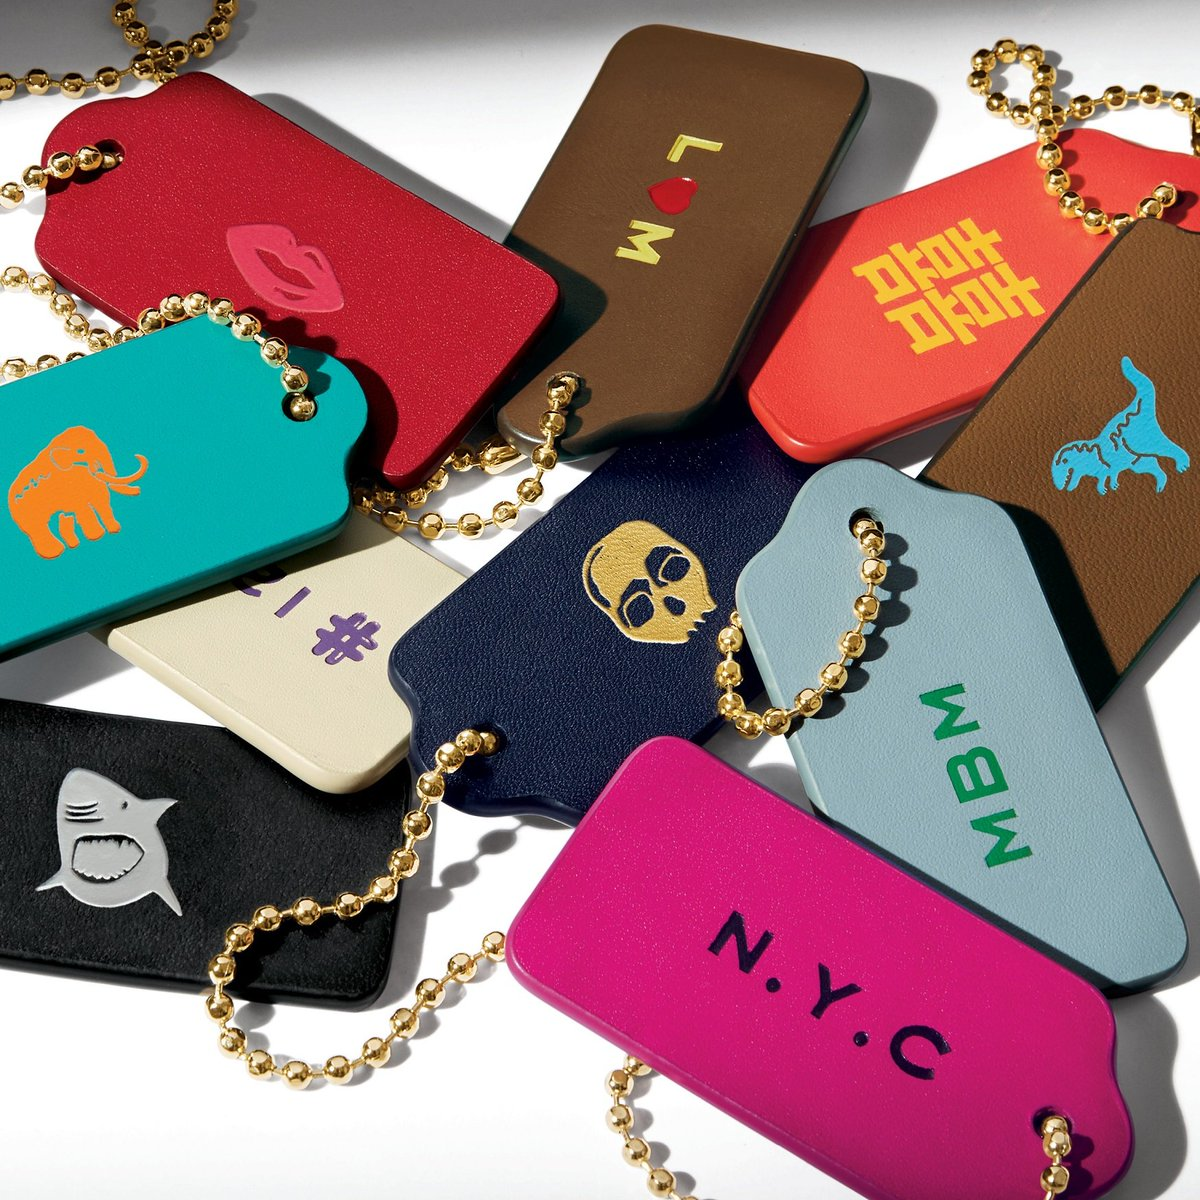 Only In New York Monogram Stamps Exclusively At Our 5th Avenue CoachHouse